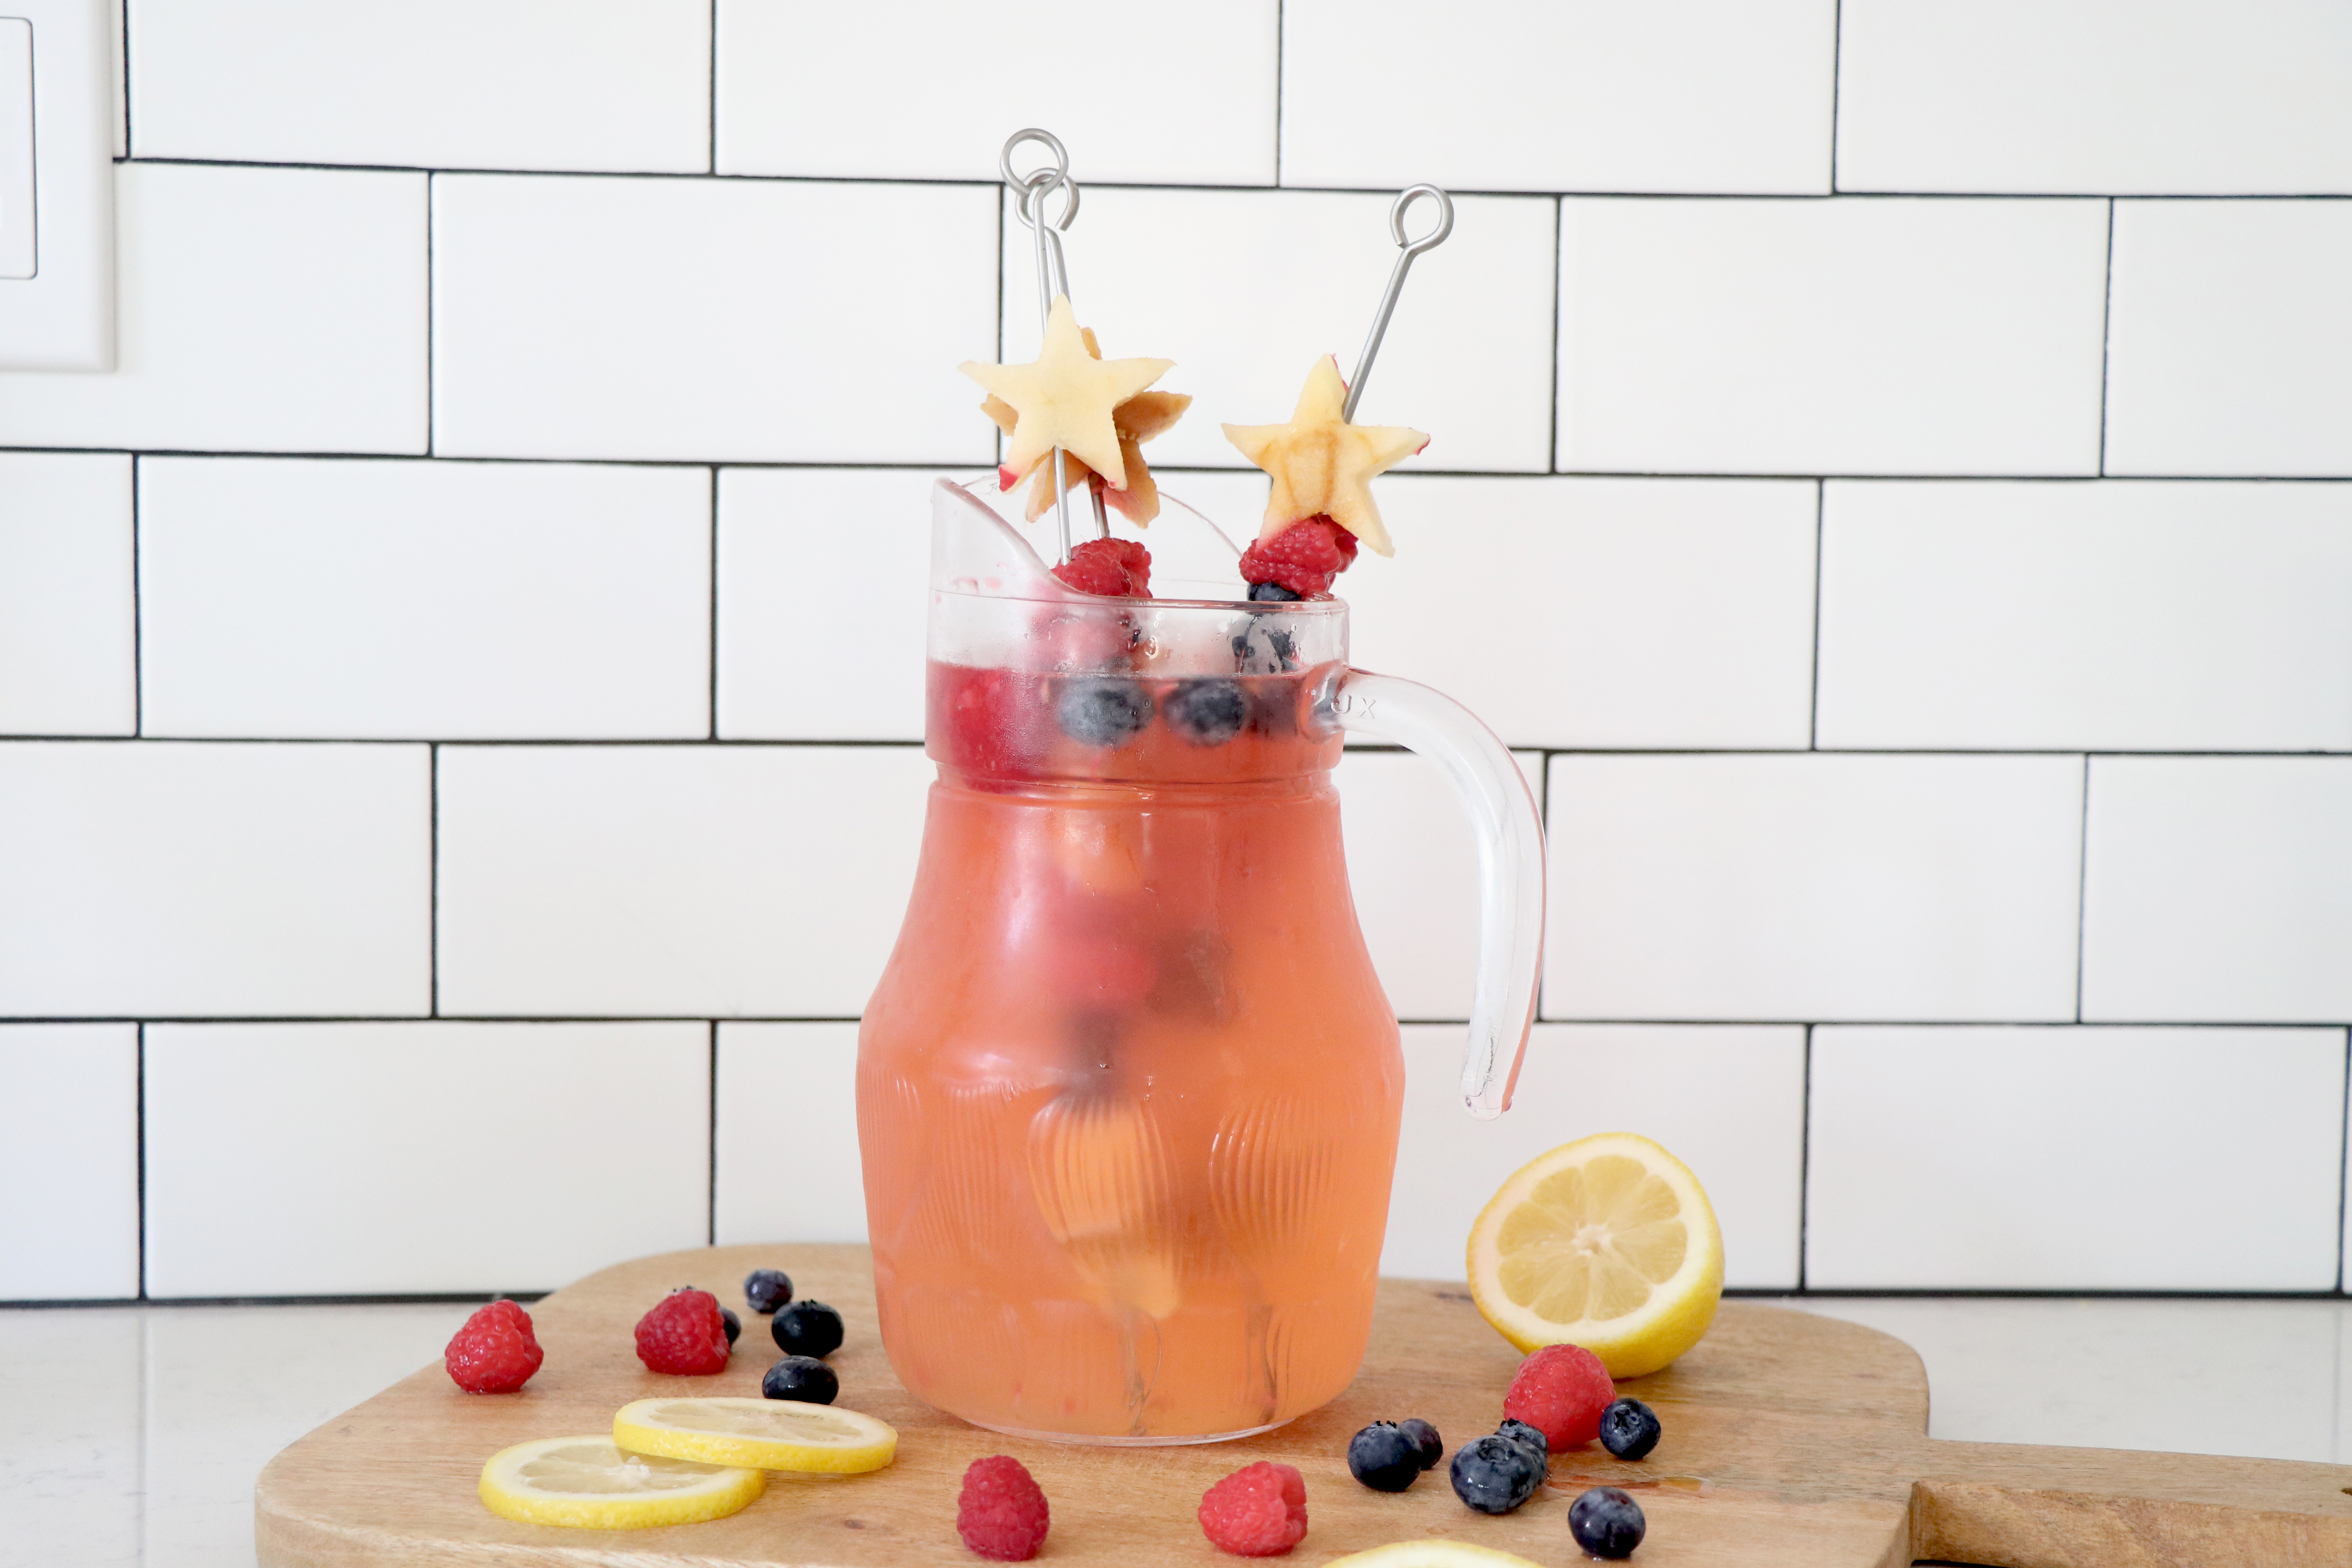 Lemon, raspberry and blueberry infused lemonade in clear pitcher.